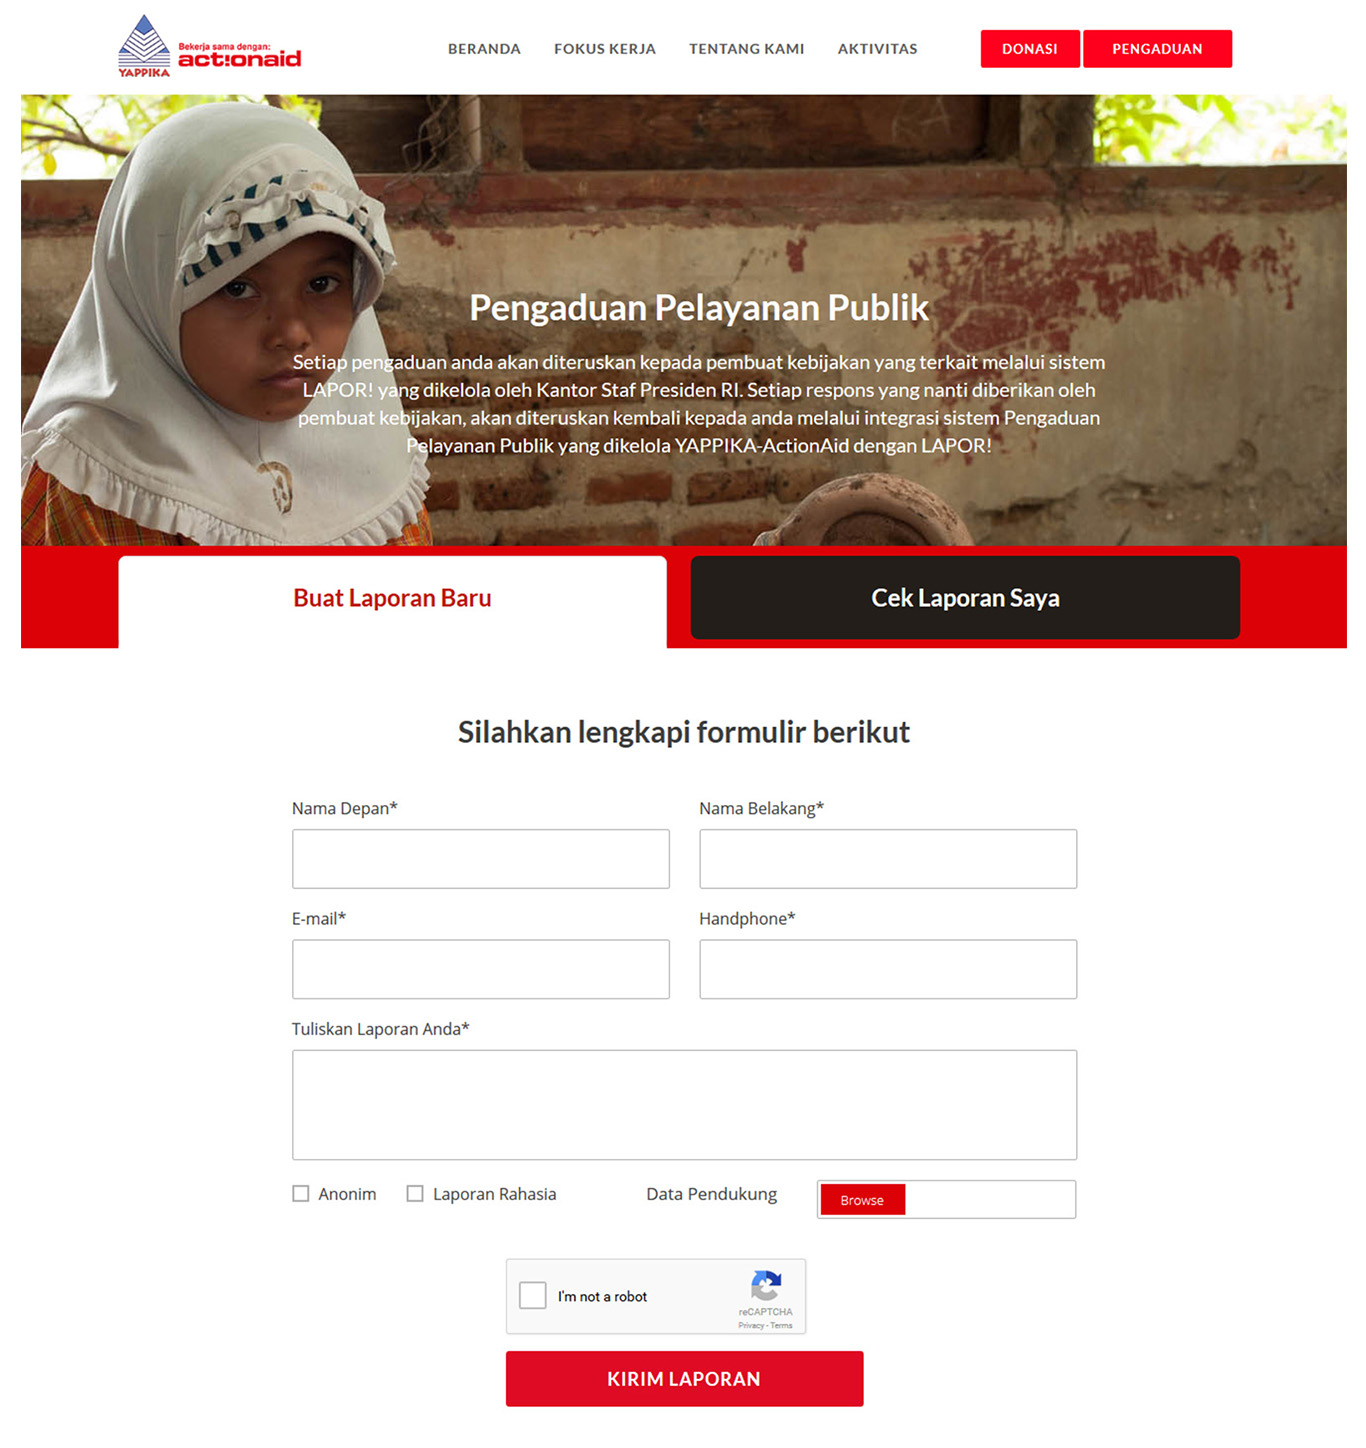 Komunigrafik project portfolio inspiration template bootstrap 4 web design and web developer, Yappika ActionAid Organization, web donation and campaign crowd funding, and charity, foundation, Jakarta Pusat, Indonesia